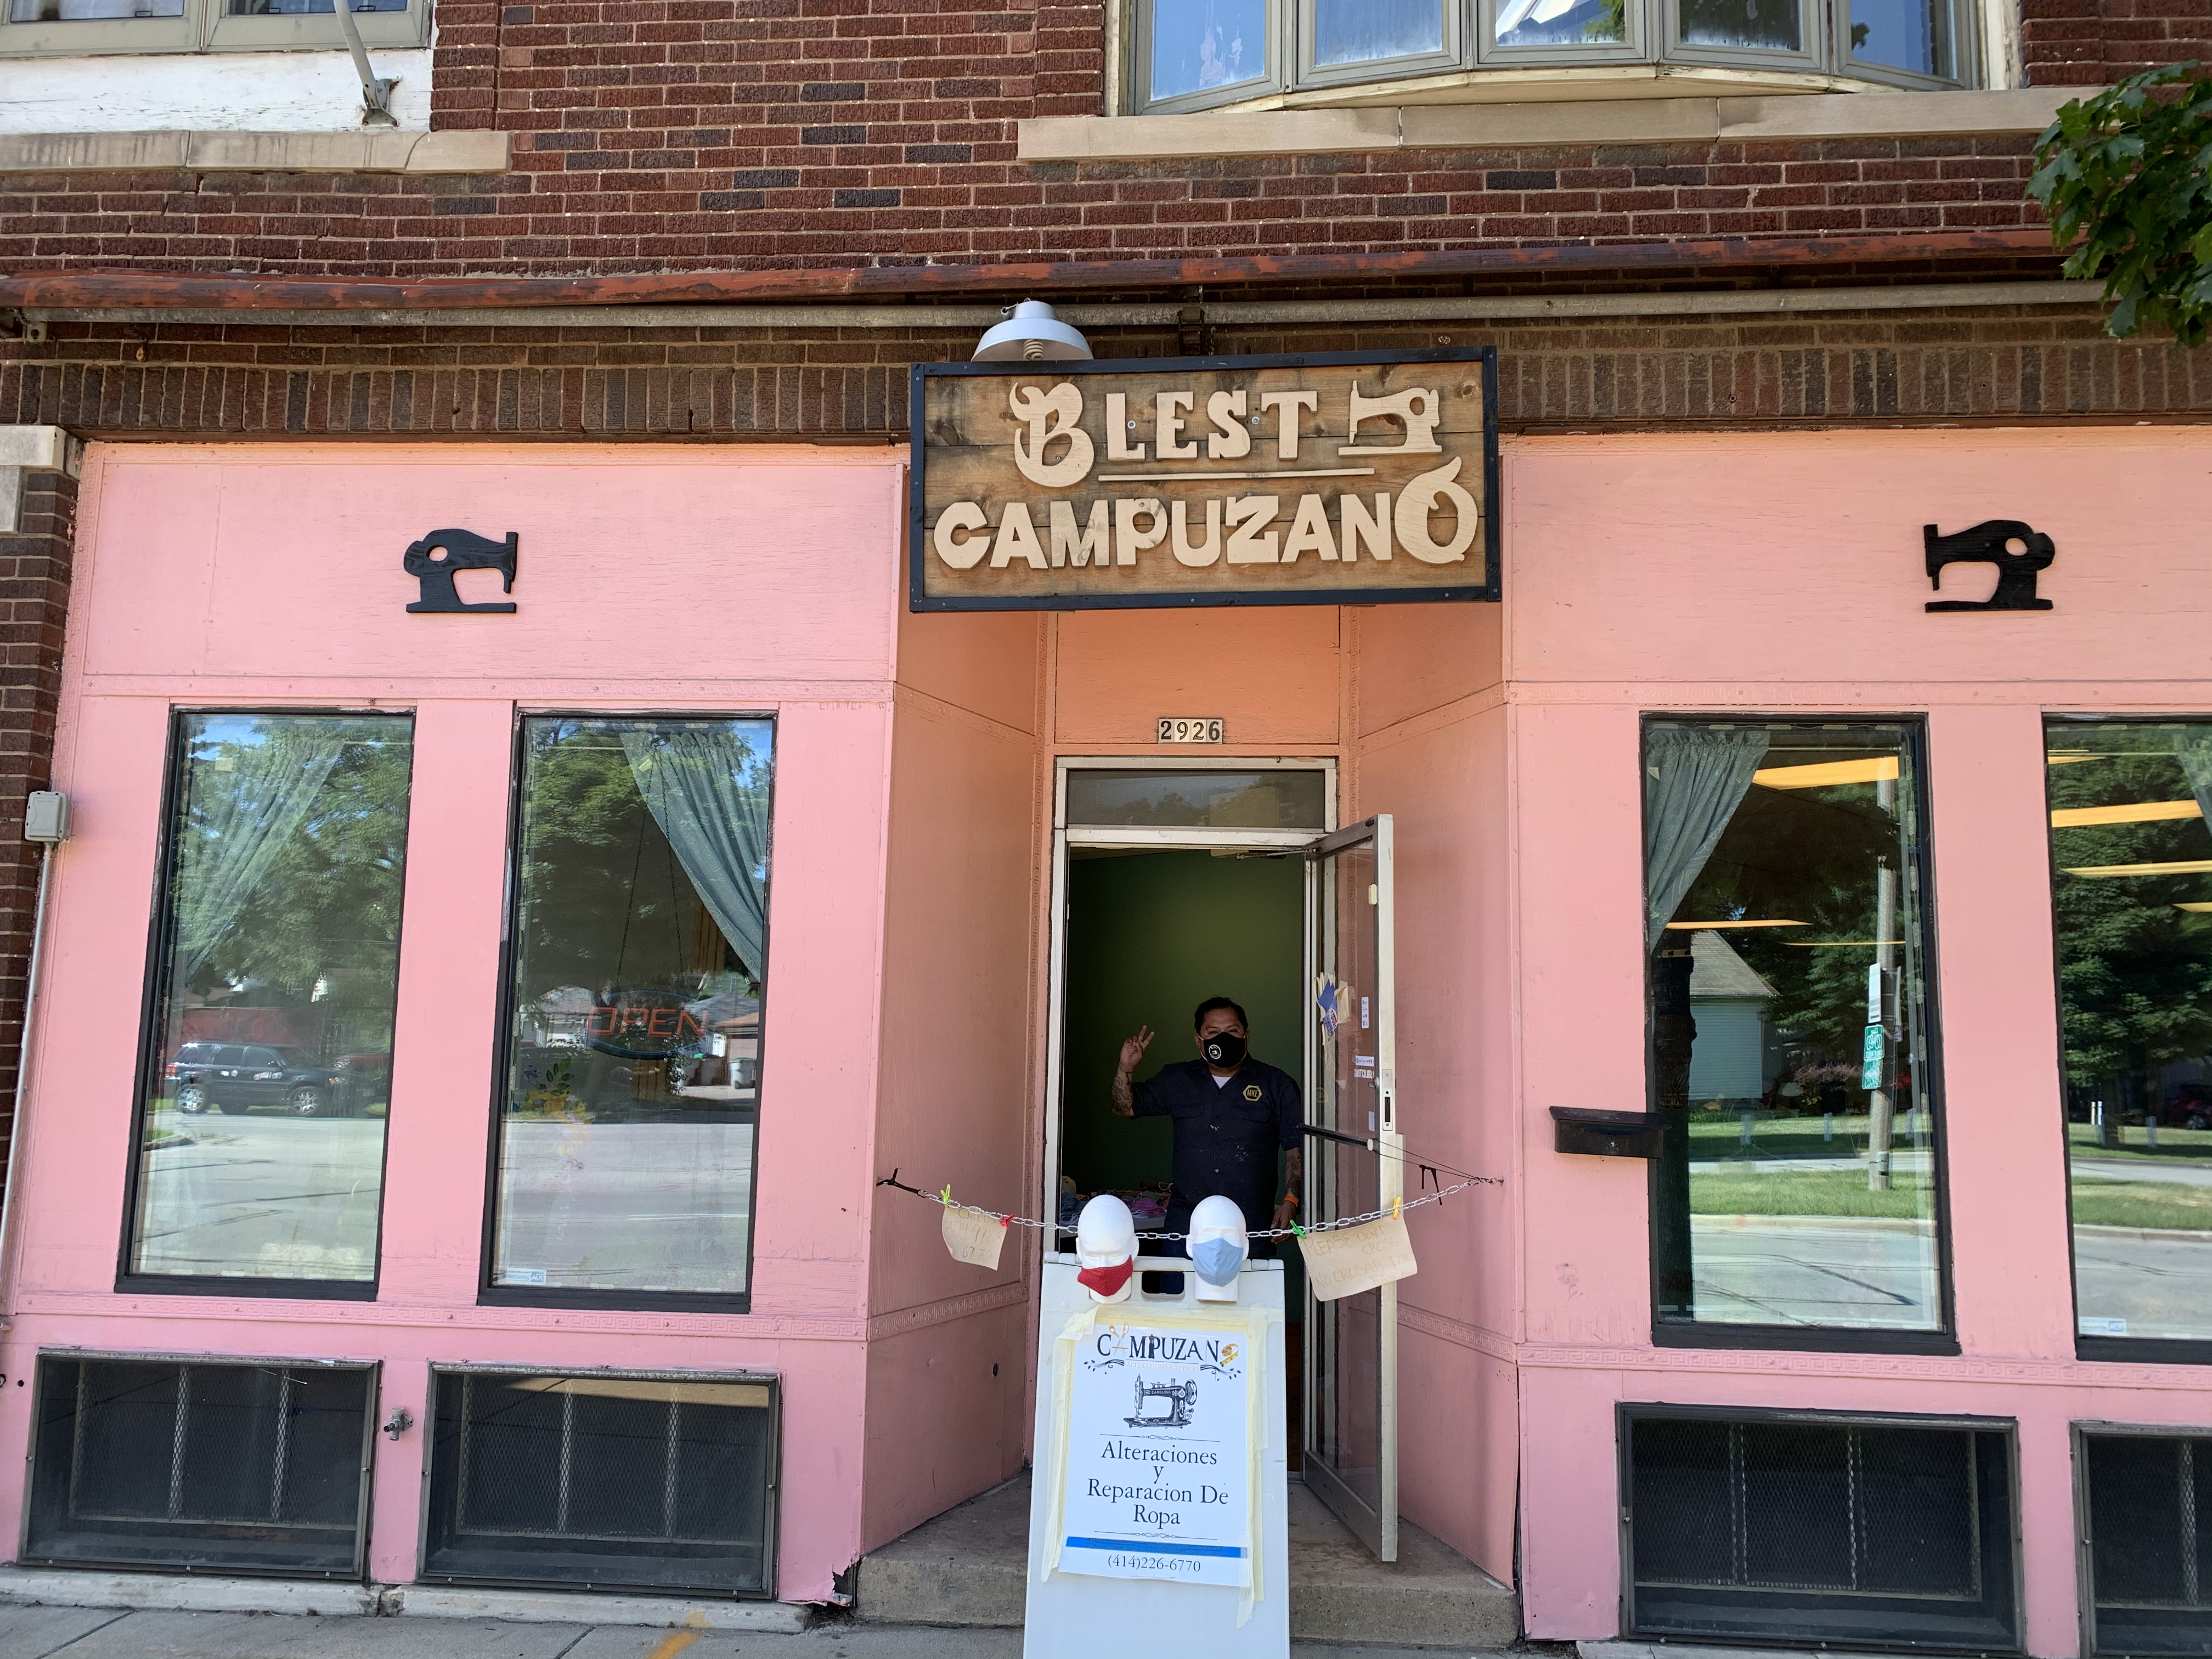 Blest by Campuzano, 2926 W. Forest Home Ave. Photo by Juan Miguel Martinez.